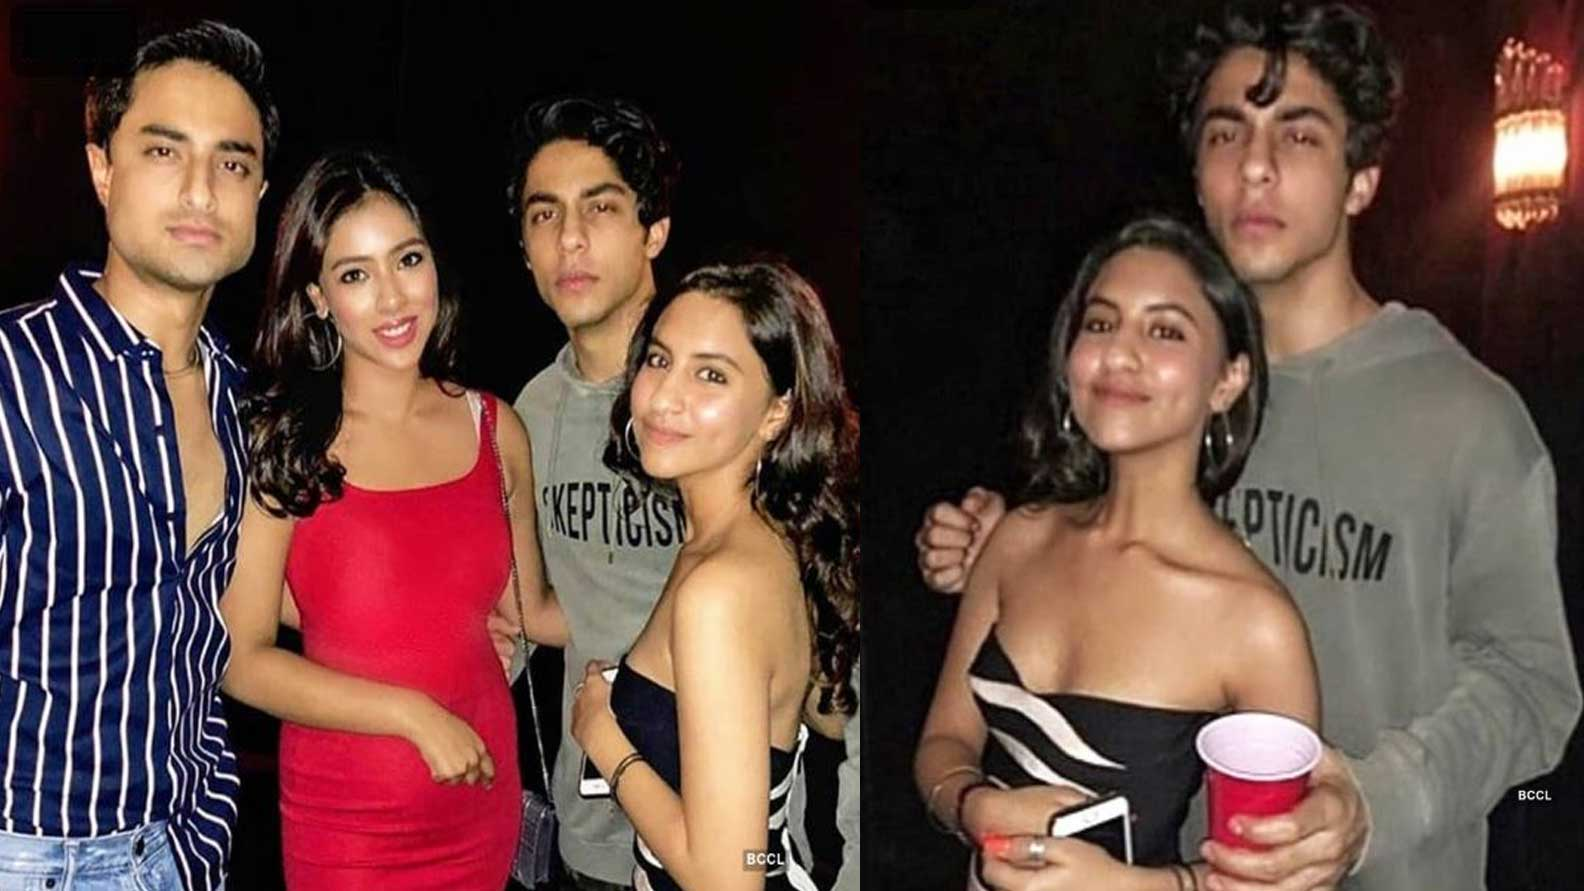 shah-rukh-khans-son-aryan-khans-party-pictures-are-breaking-the-internet